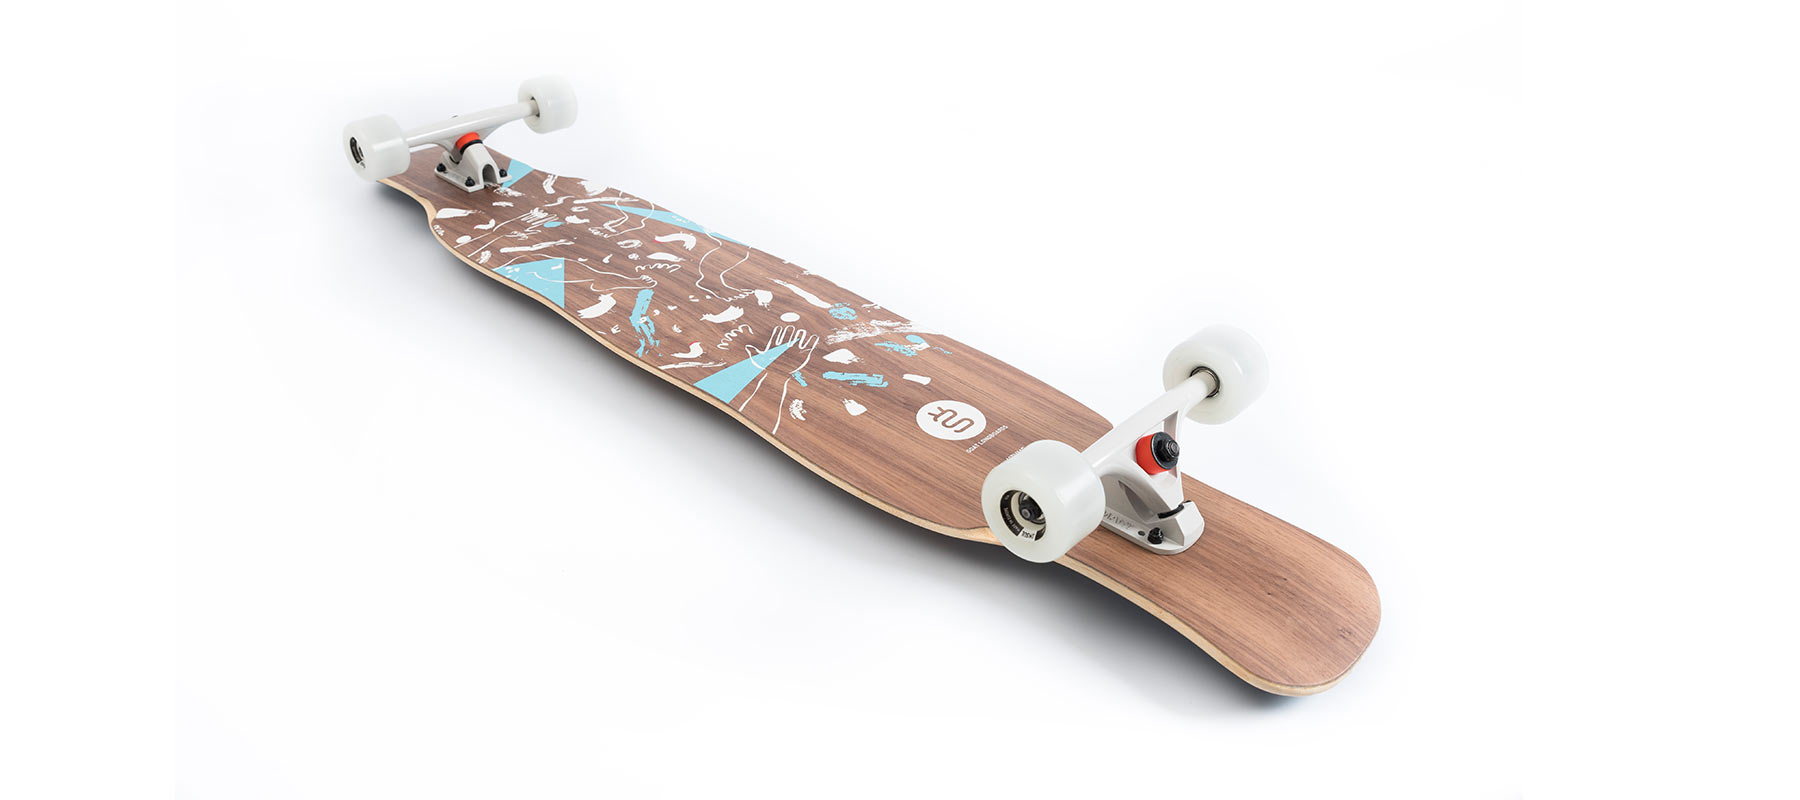 Goat Uzume Amgreat Edition Tabla Longboard Dancing